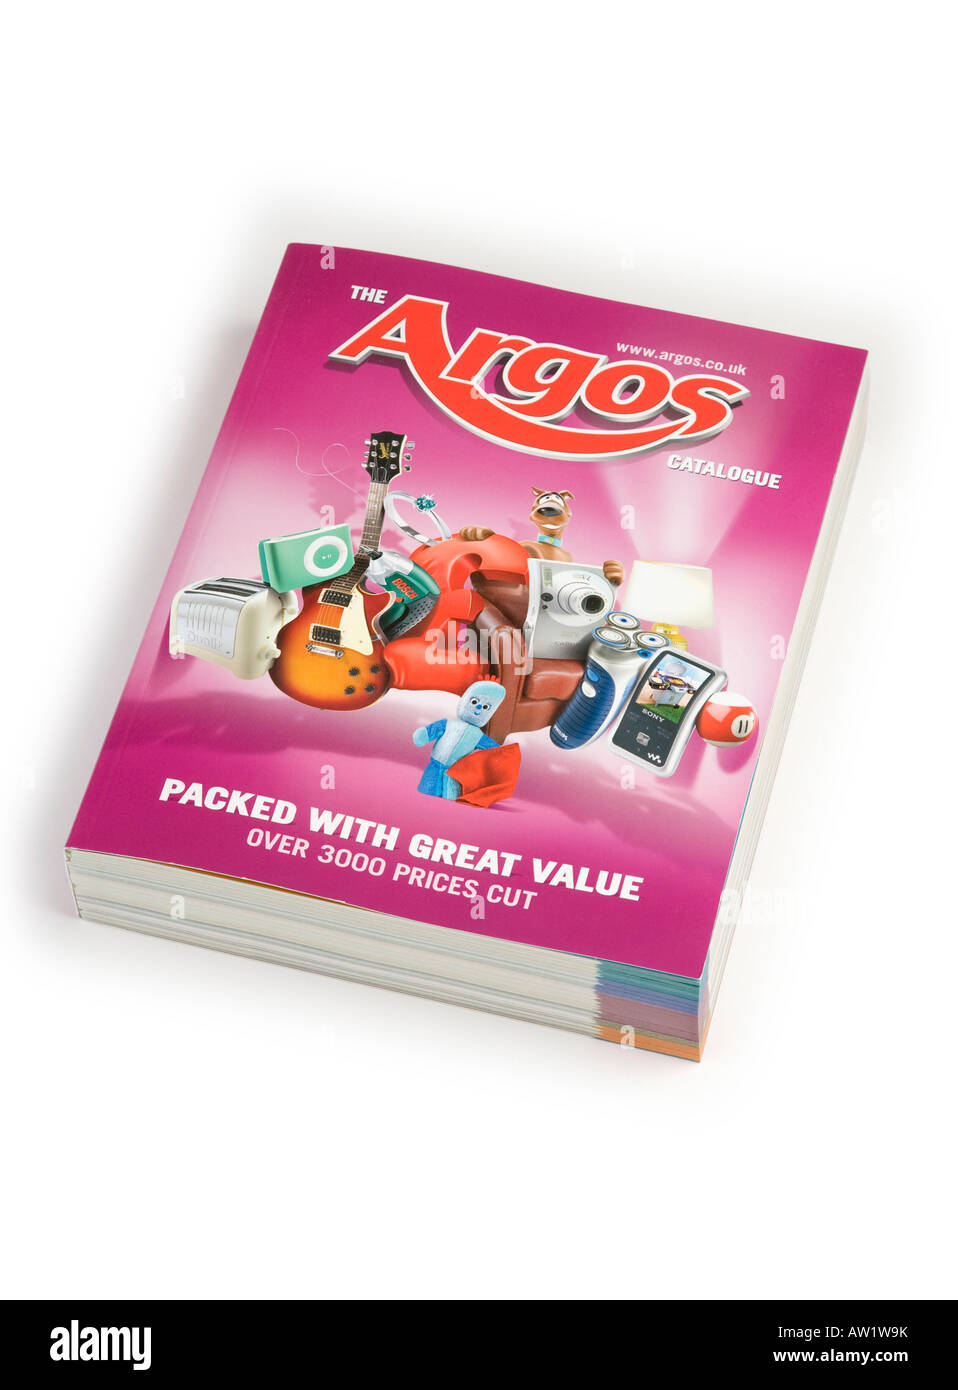 argos catalogue 2008 stock photo royalty free image. Black Bedroom Furniture Sets. Home Design Ideas